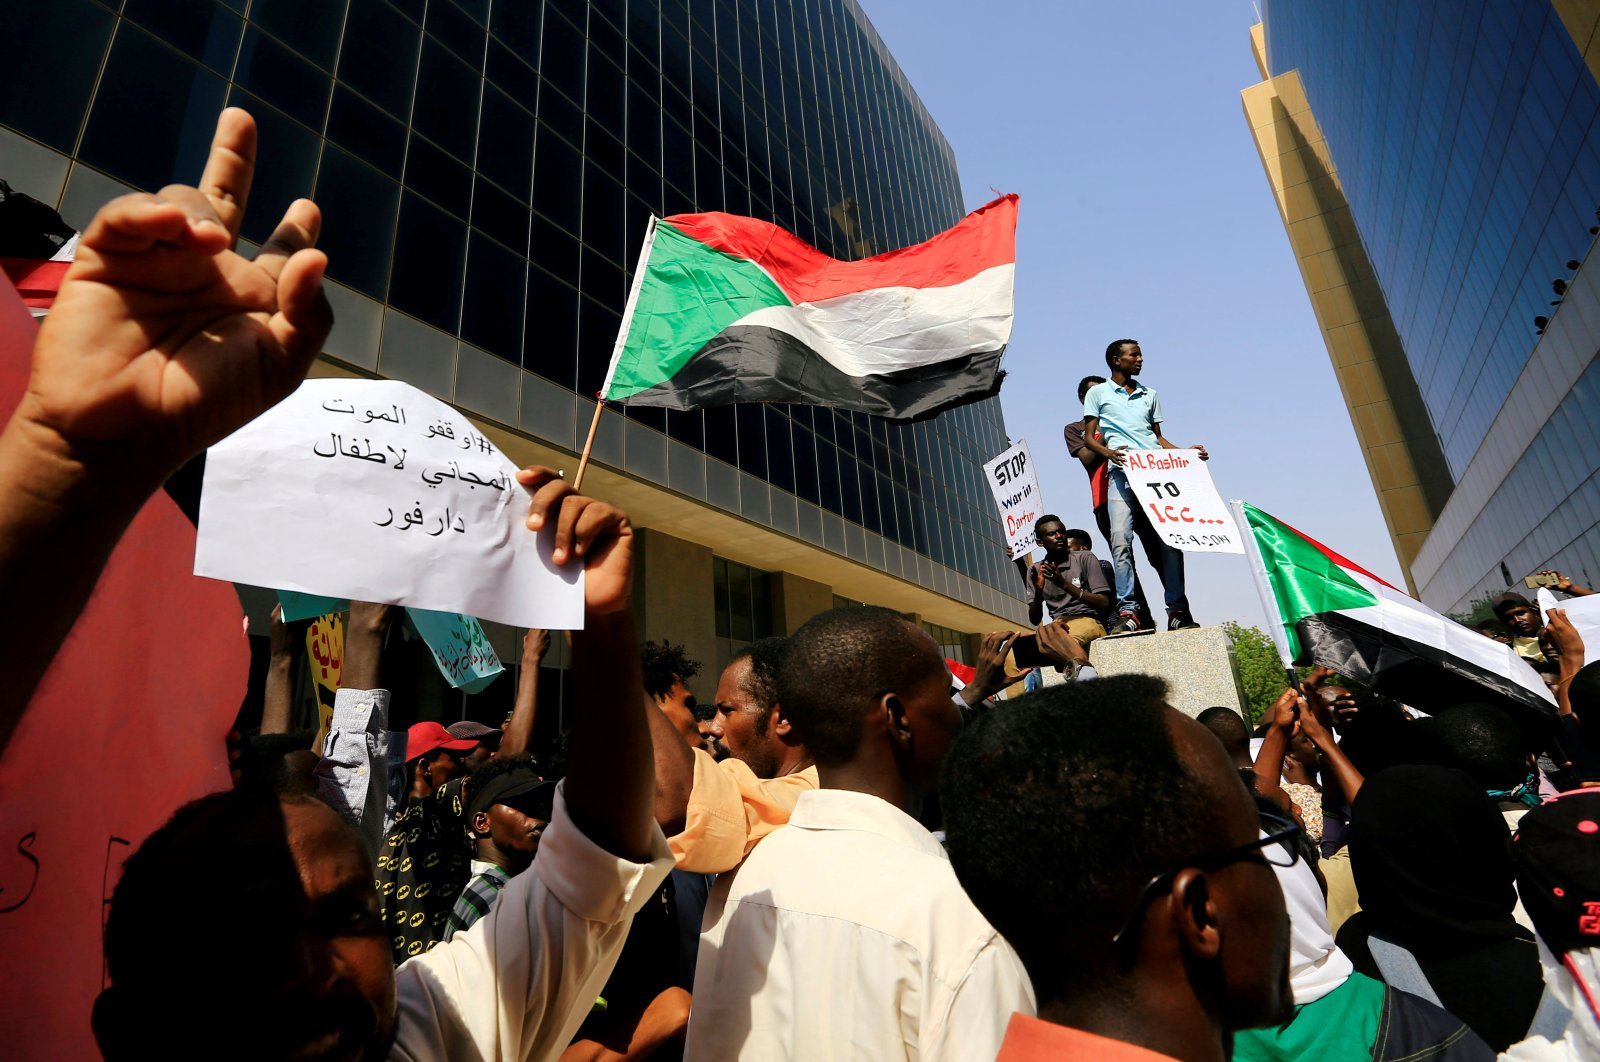 Protesters attend a rally calling for a stop to killing in Darfur and stability for peace, next to a building in front of the Ministry of Justice in Khartoum, Sudan, Sept. 23, 2019. (Reuters Photo)